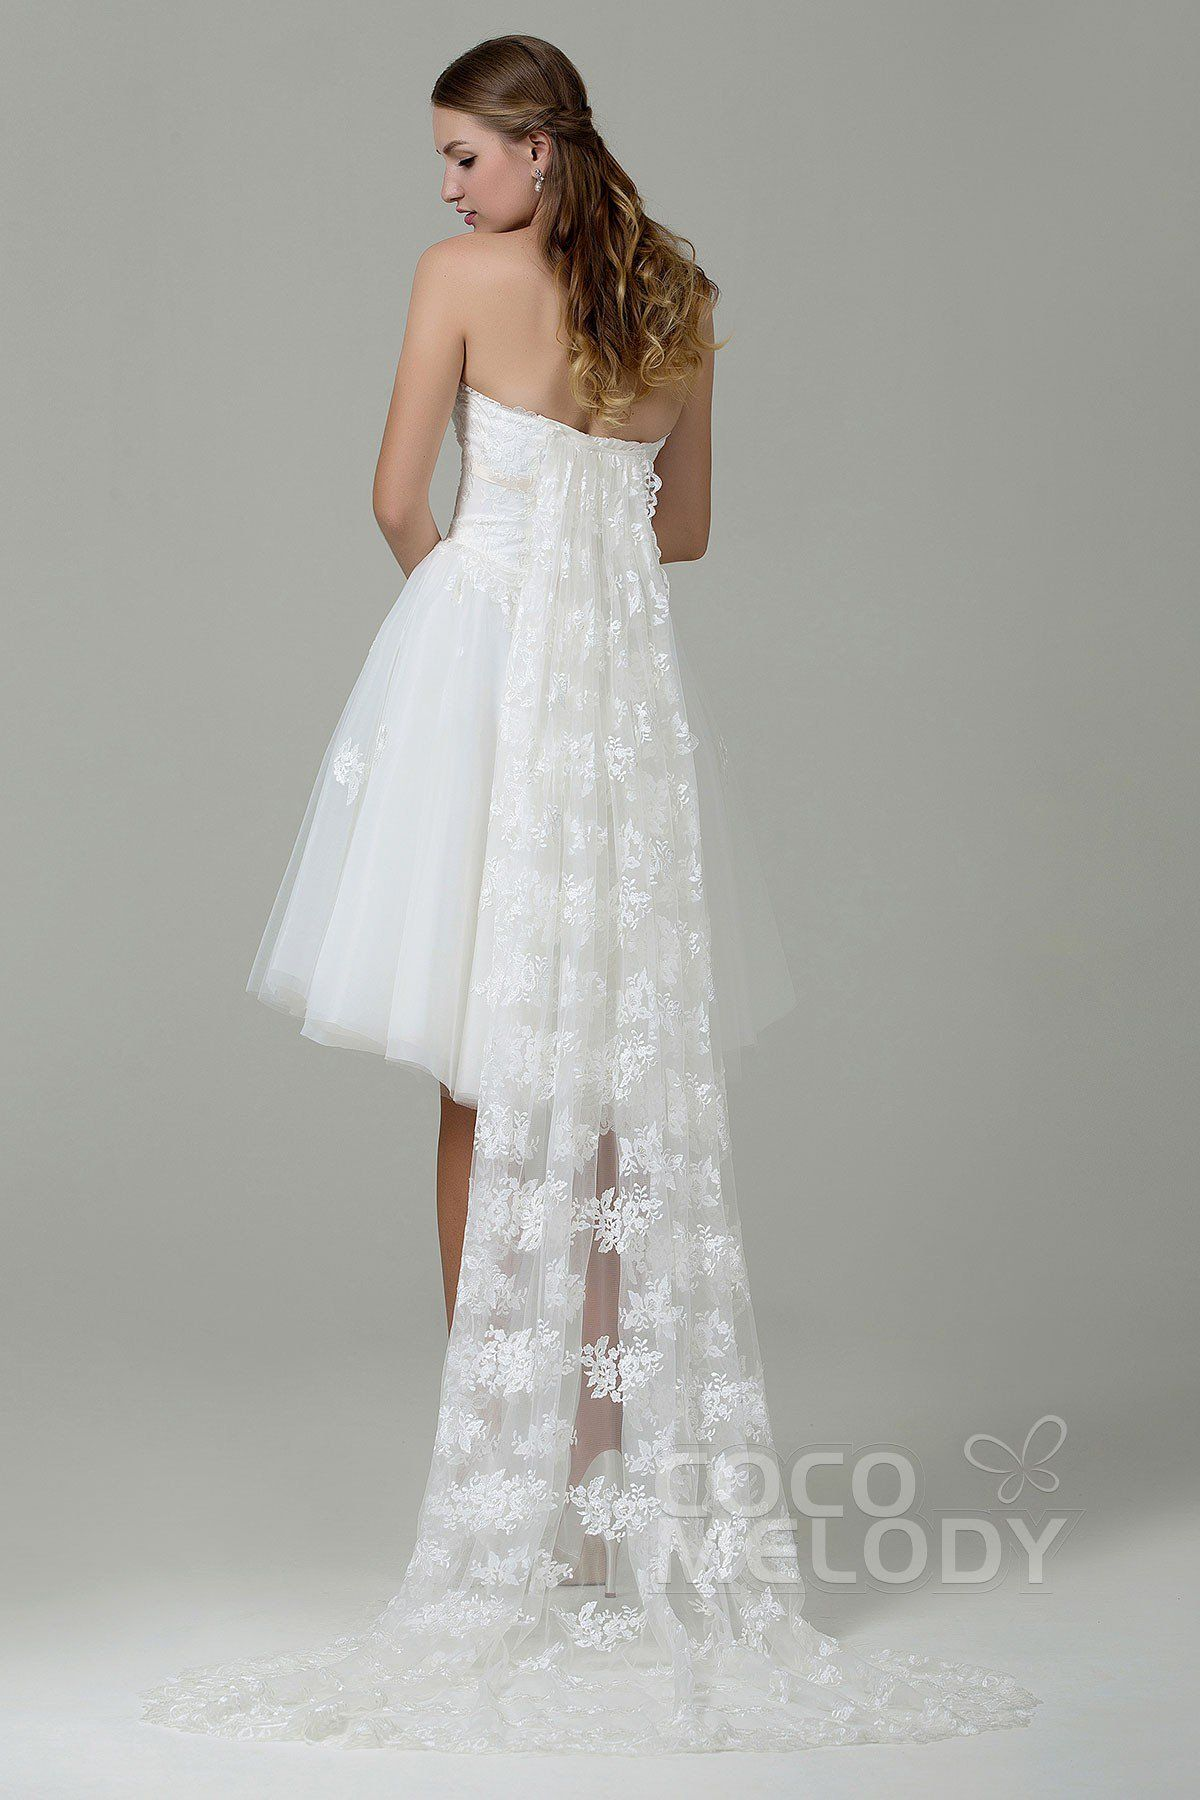 Sweet A-Line Strapless Natural Knee Length Tulle and Lace Ivory Sleeveless Lace Up-Corset Wedding Dress with Appliques and Removable Train CWLK15001#cocomelody#weddingdresses#bridalgowns#